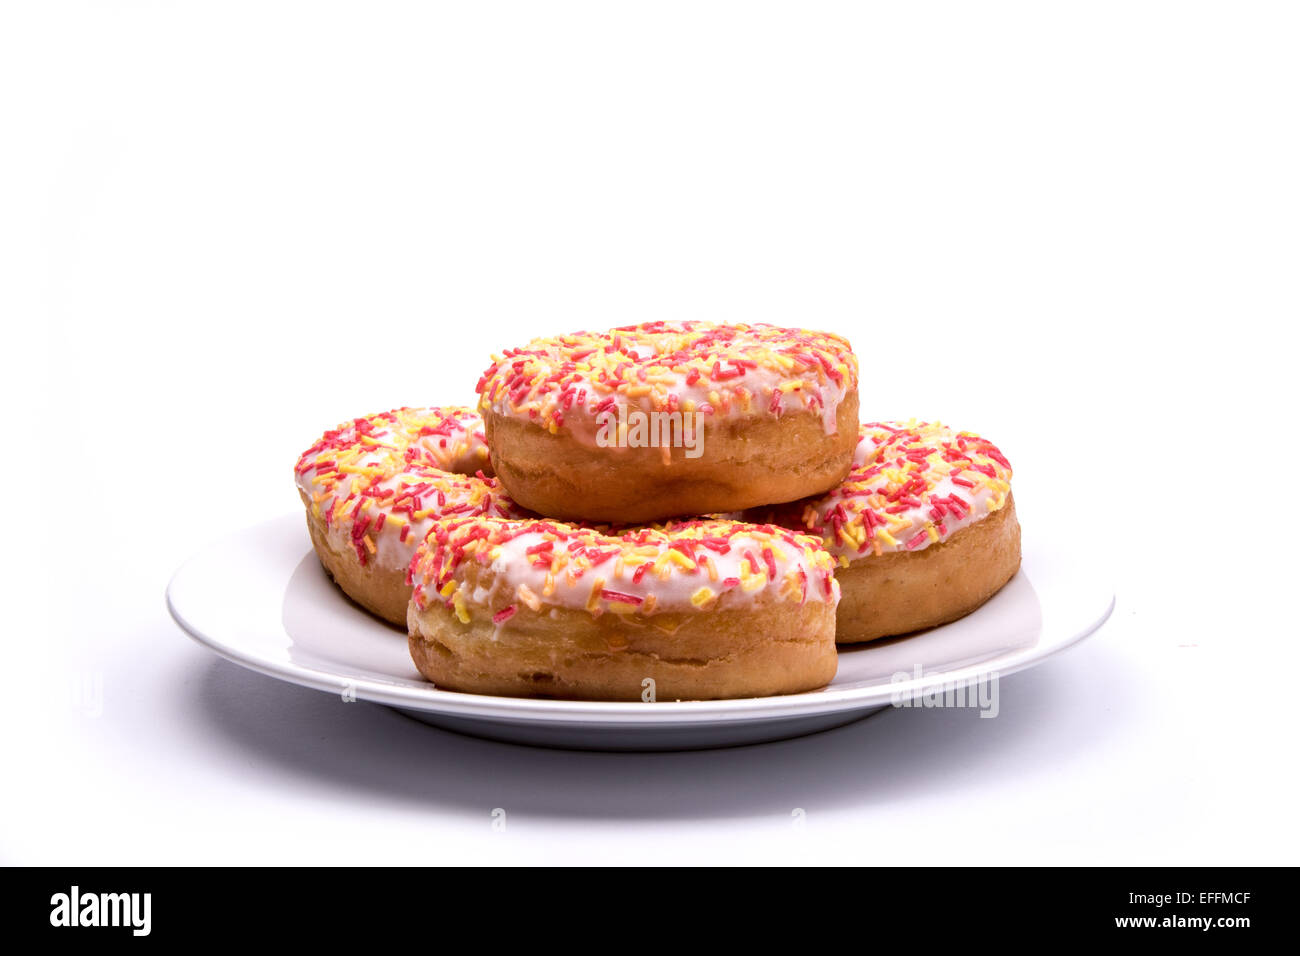 A selection of iced ring donuts on a plate against a white background - Stock Image